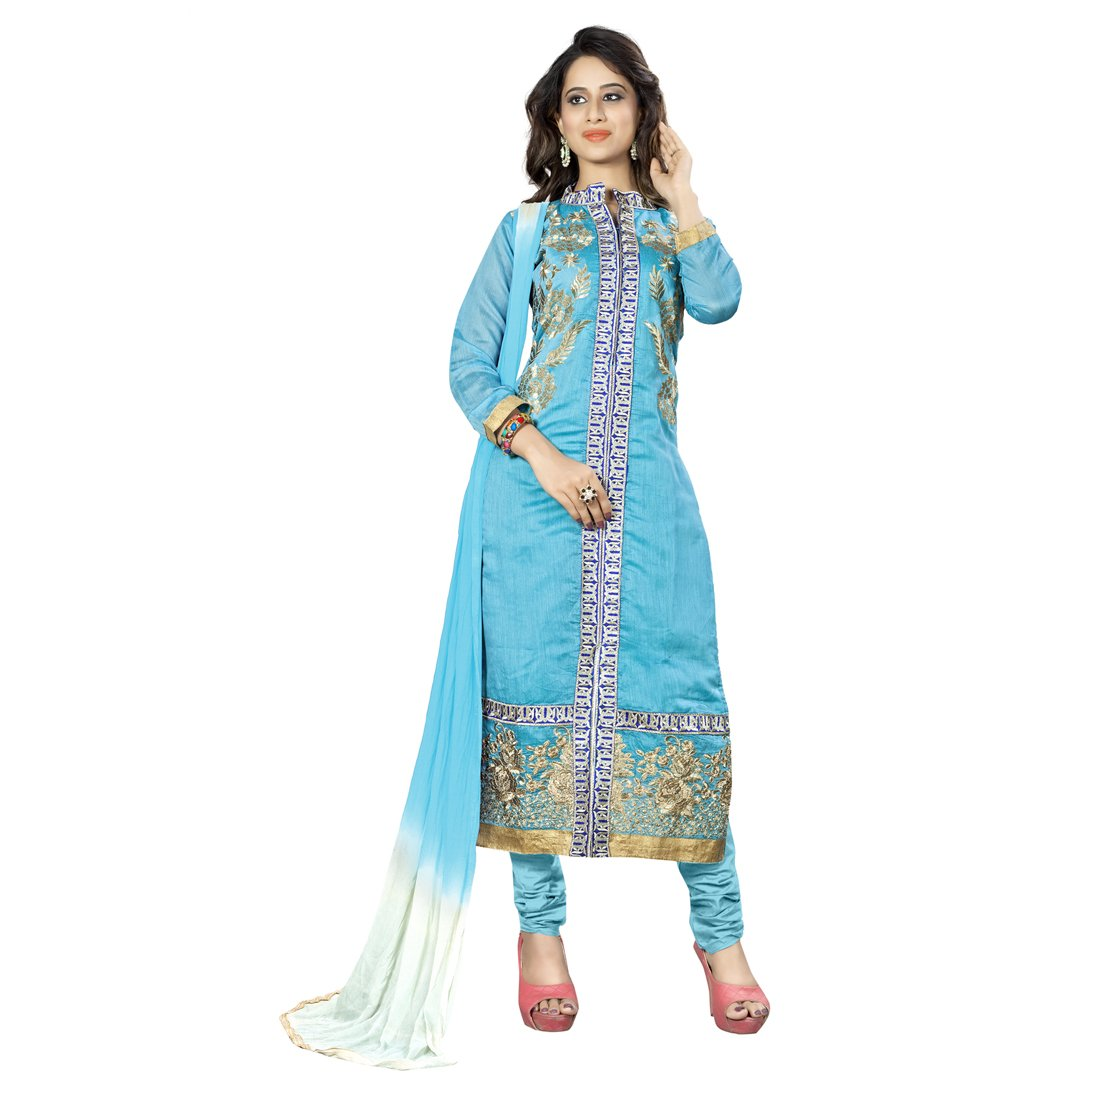 eda72741990 Sainoor Women S Sky Blue Colour Embroidered Dress Material (2.25 M)   Amazon.in  Clothing   Accessories